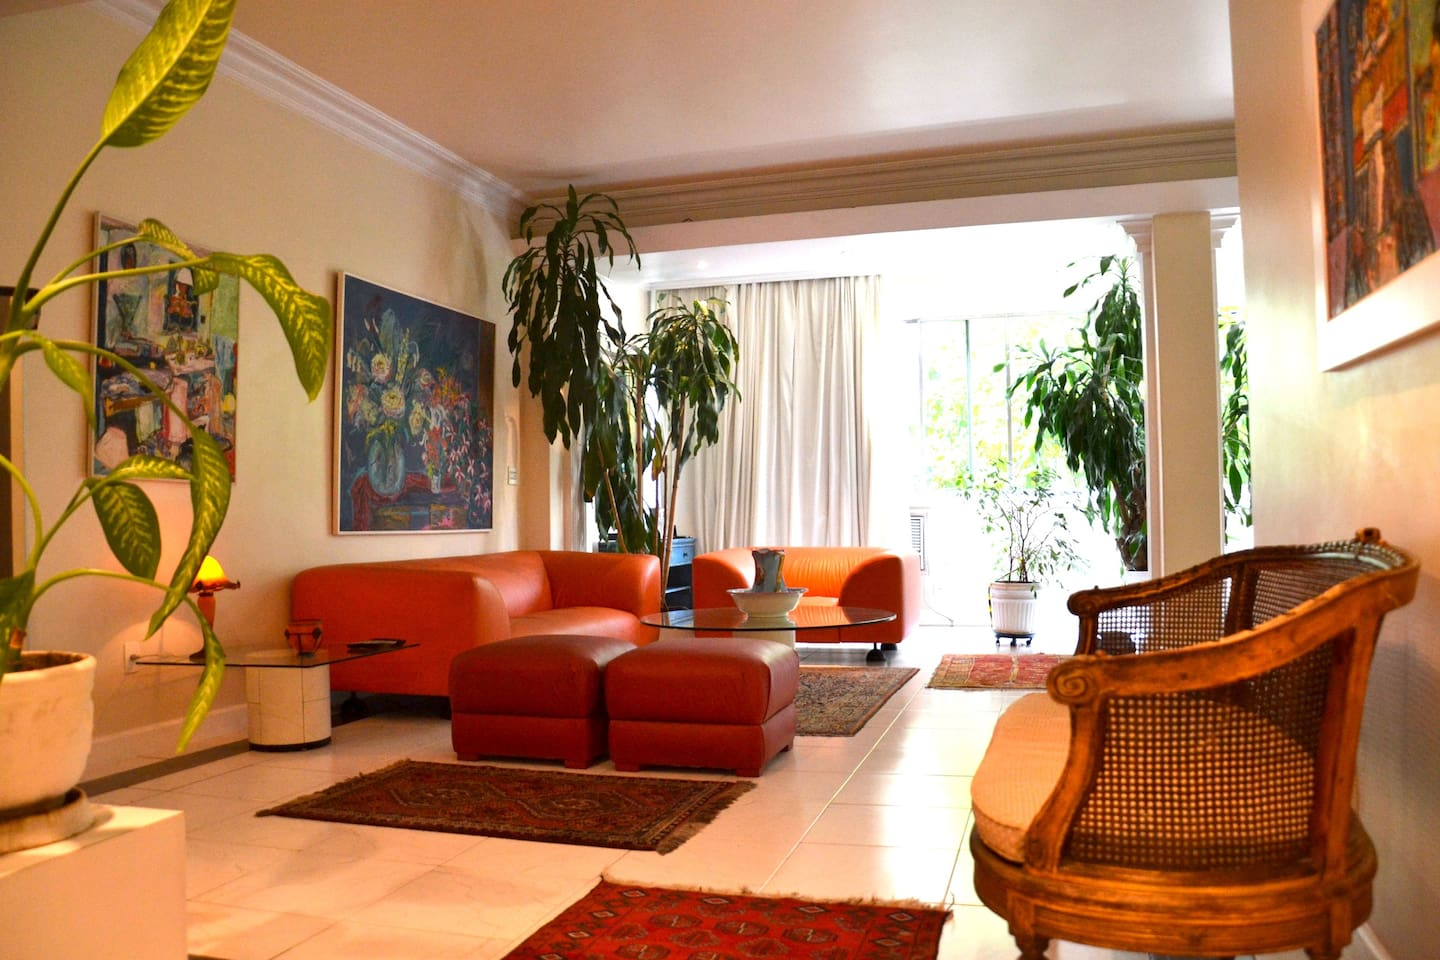 W14 - Huge 3BR apartment